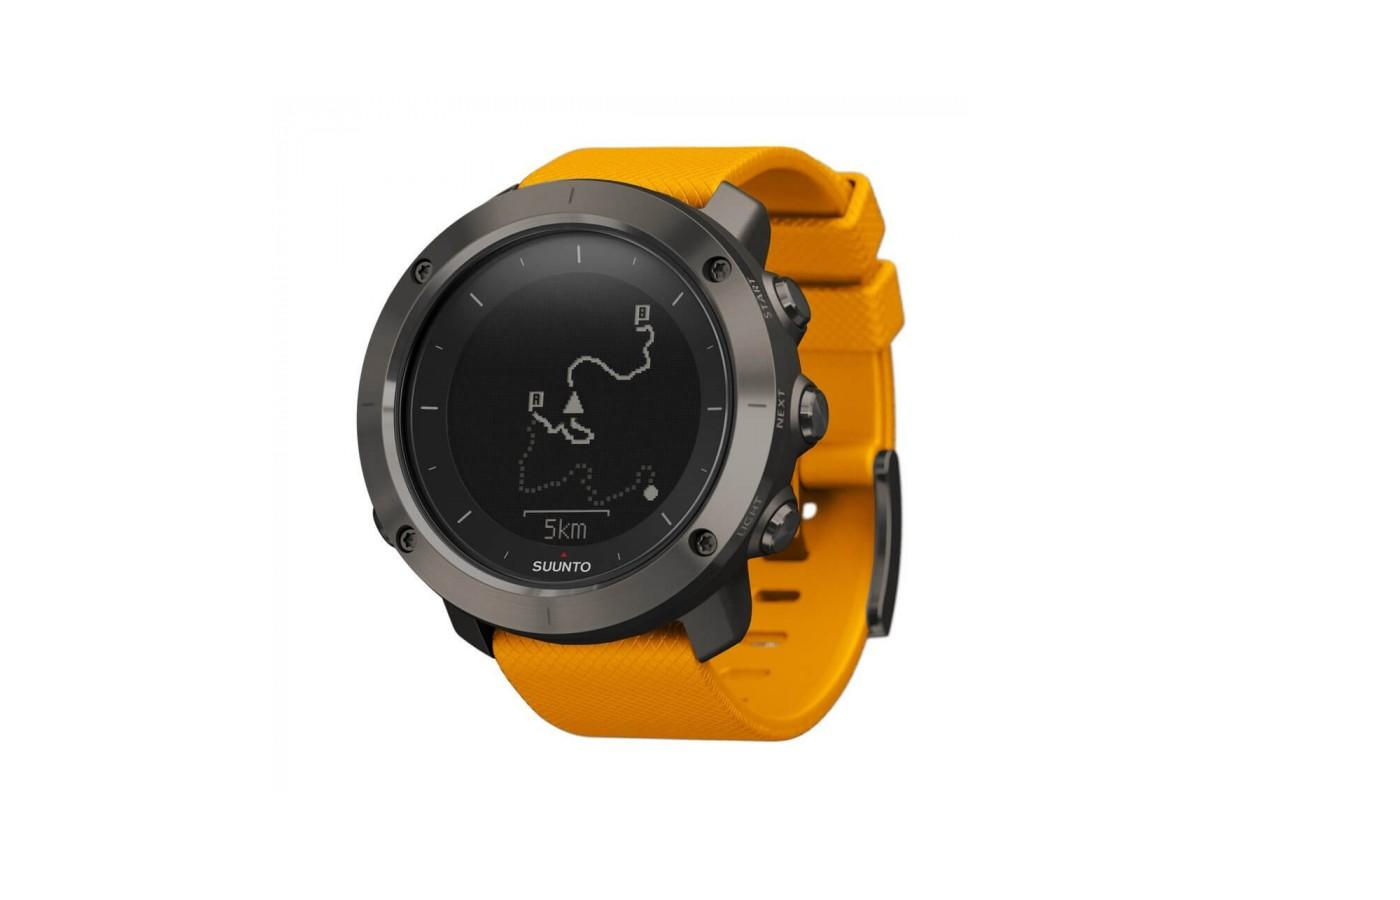 Suunto Traverse also comes in Amber